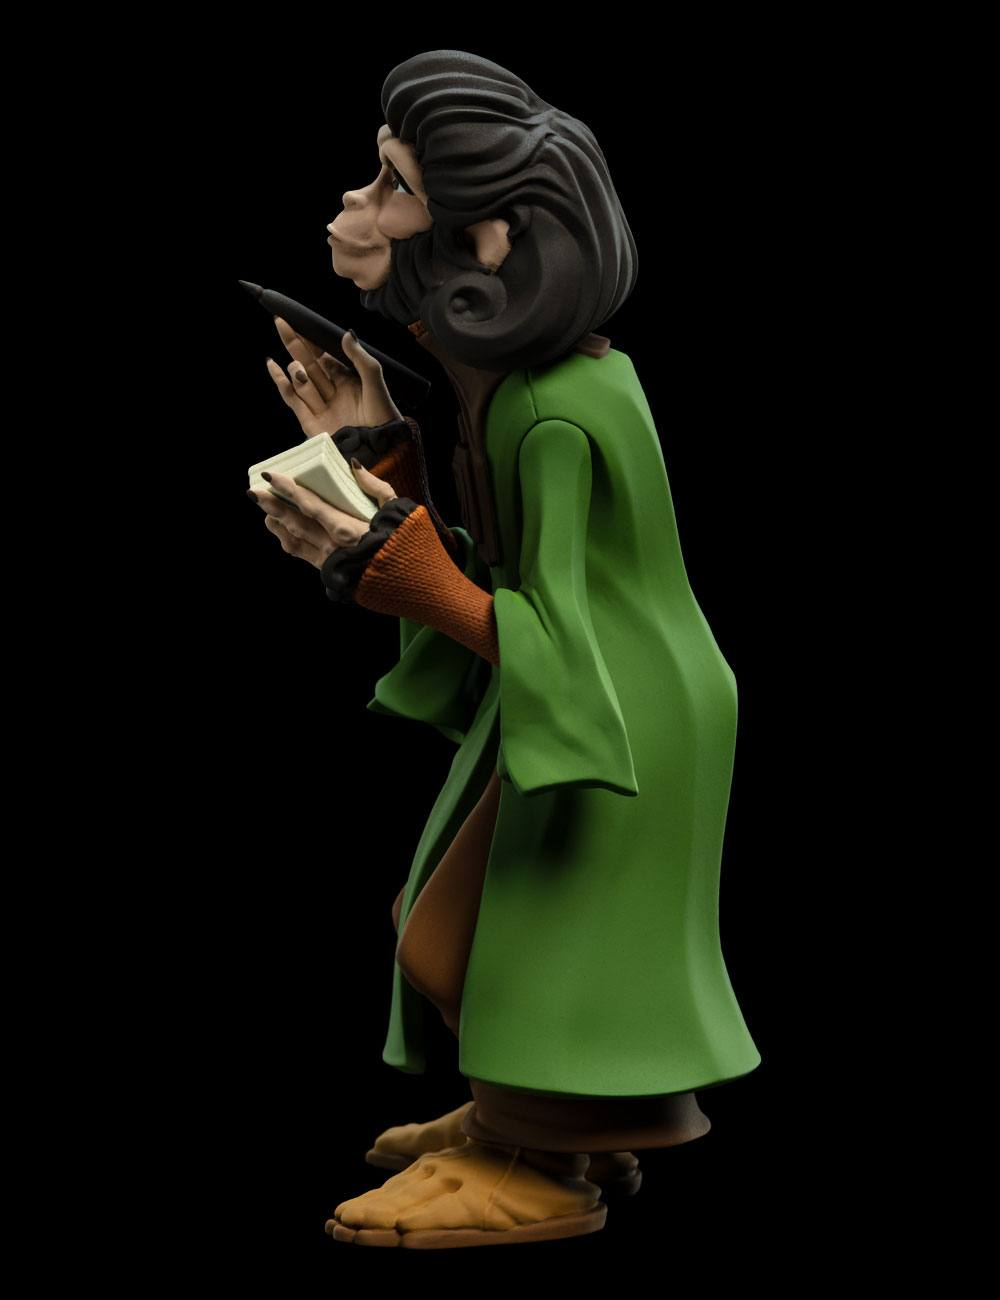 Weta Planet of the Apes Dr. Zira Mini Epics Vinyl Figure Statue